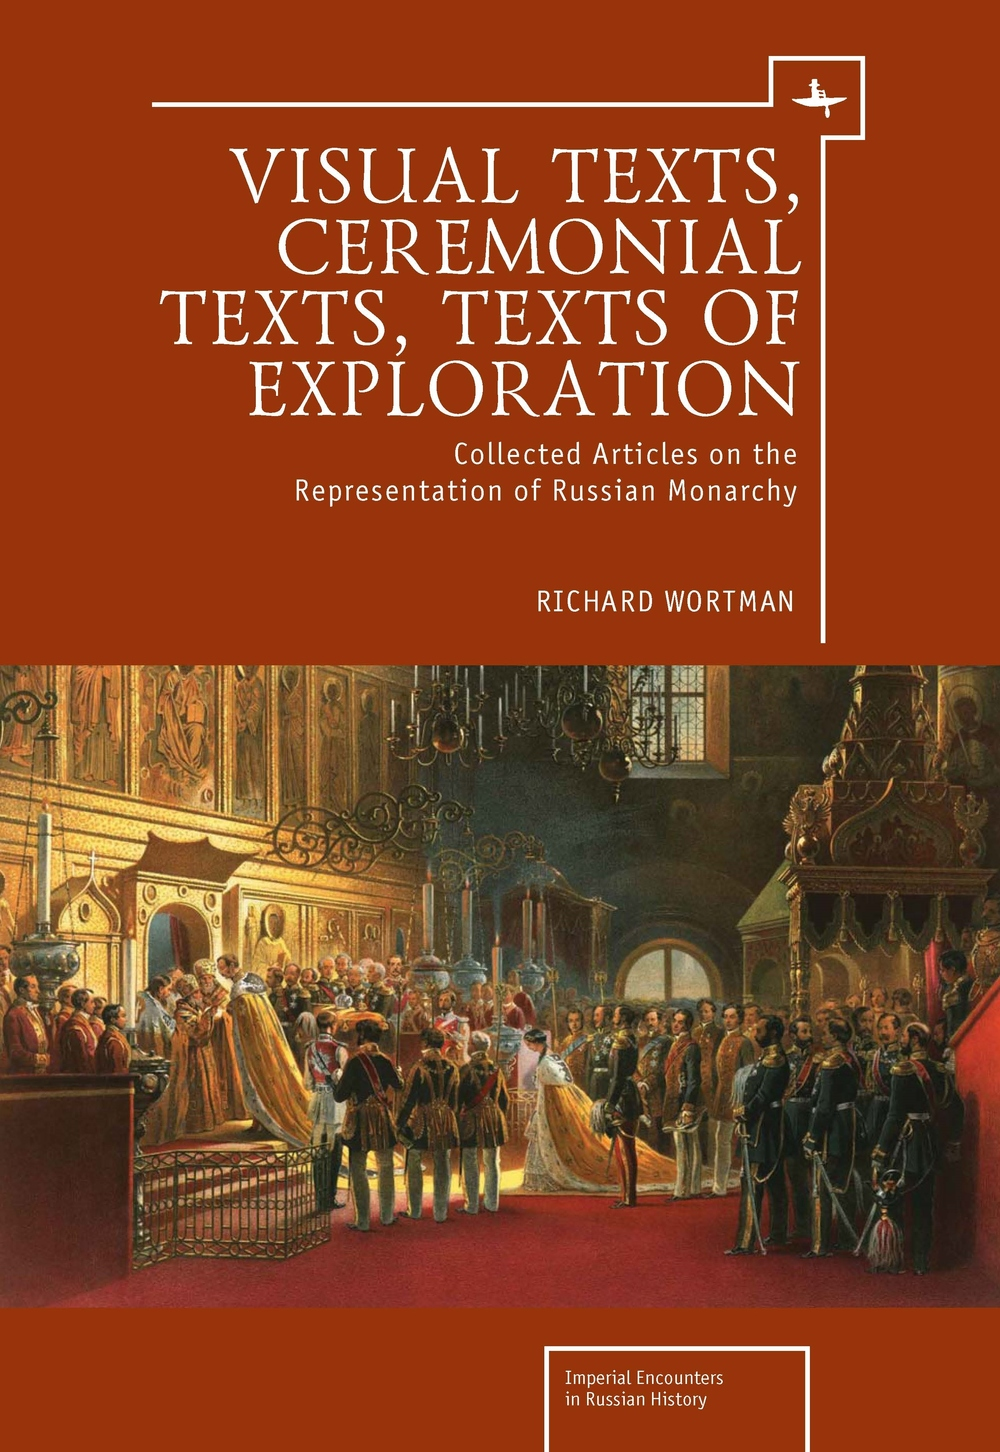 Visual Texts, Ceremonial Texts, Texts of Exploration:    Collected Articles on the Representation of Russian Monarchy  Richard Wortman   Read on JSTOR  |  Purchase book